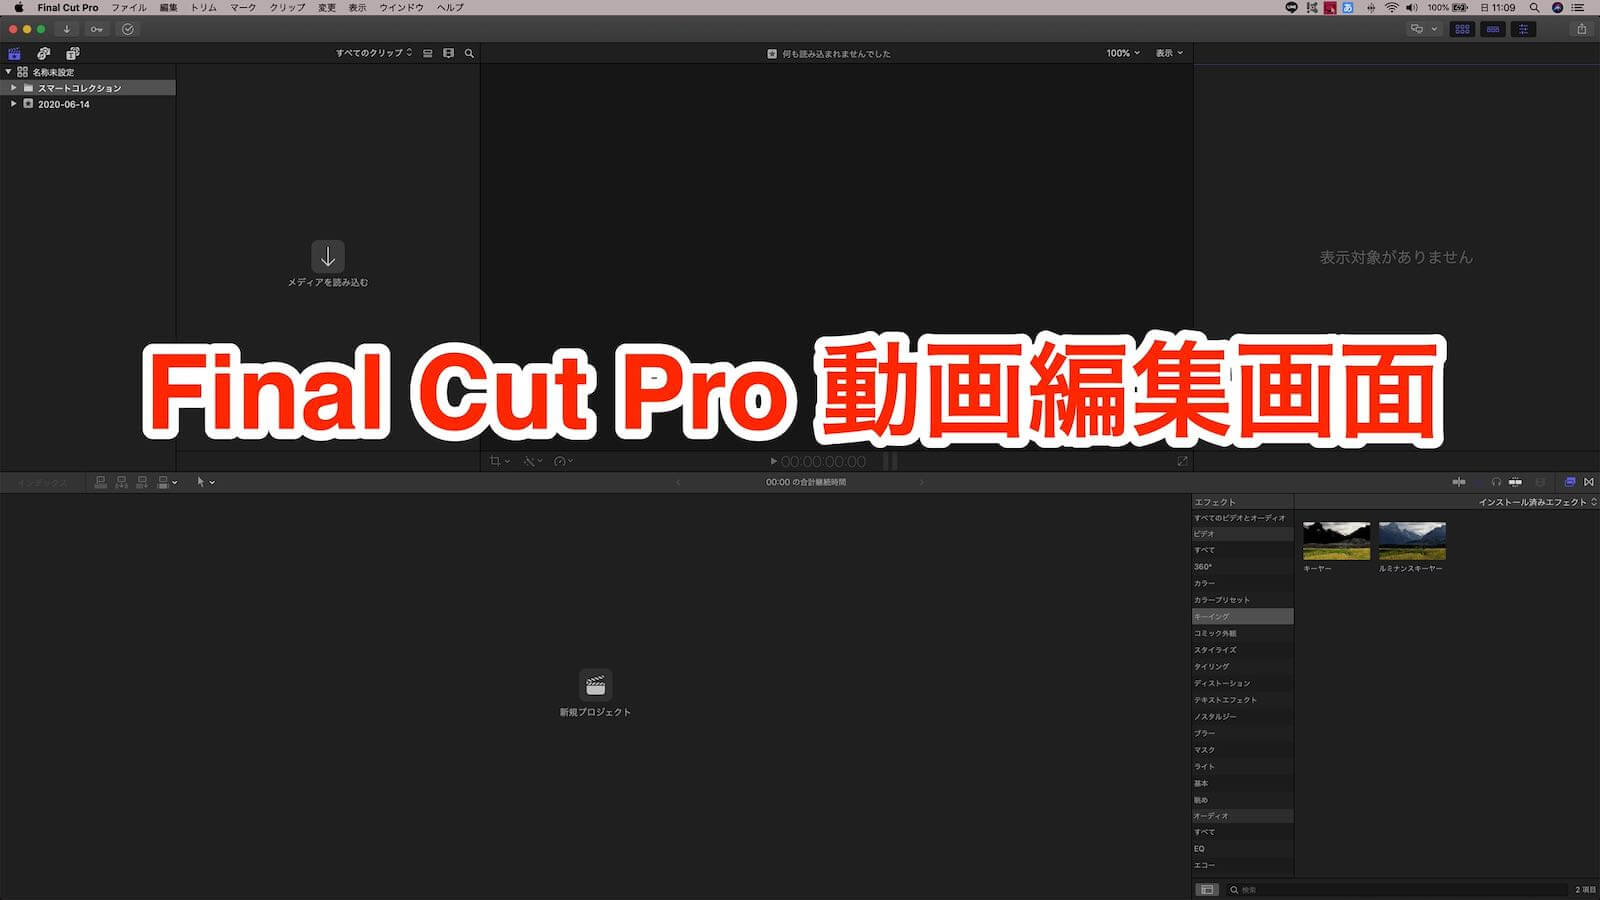 0232 Explain the basic usage of Final Cut Pro 02